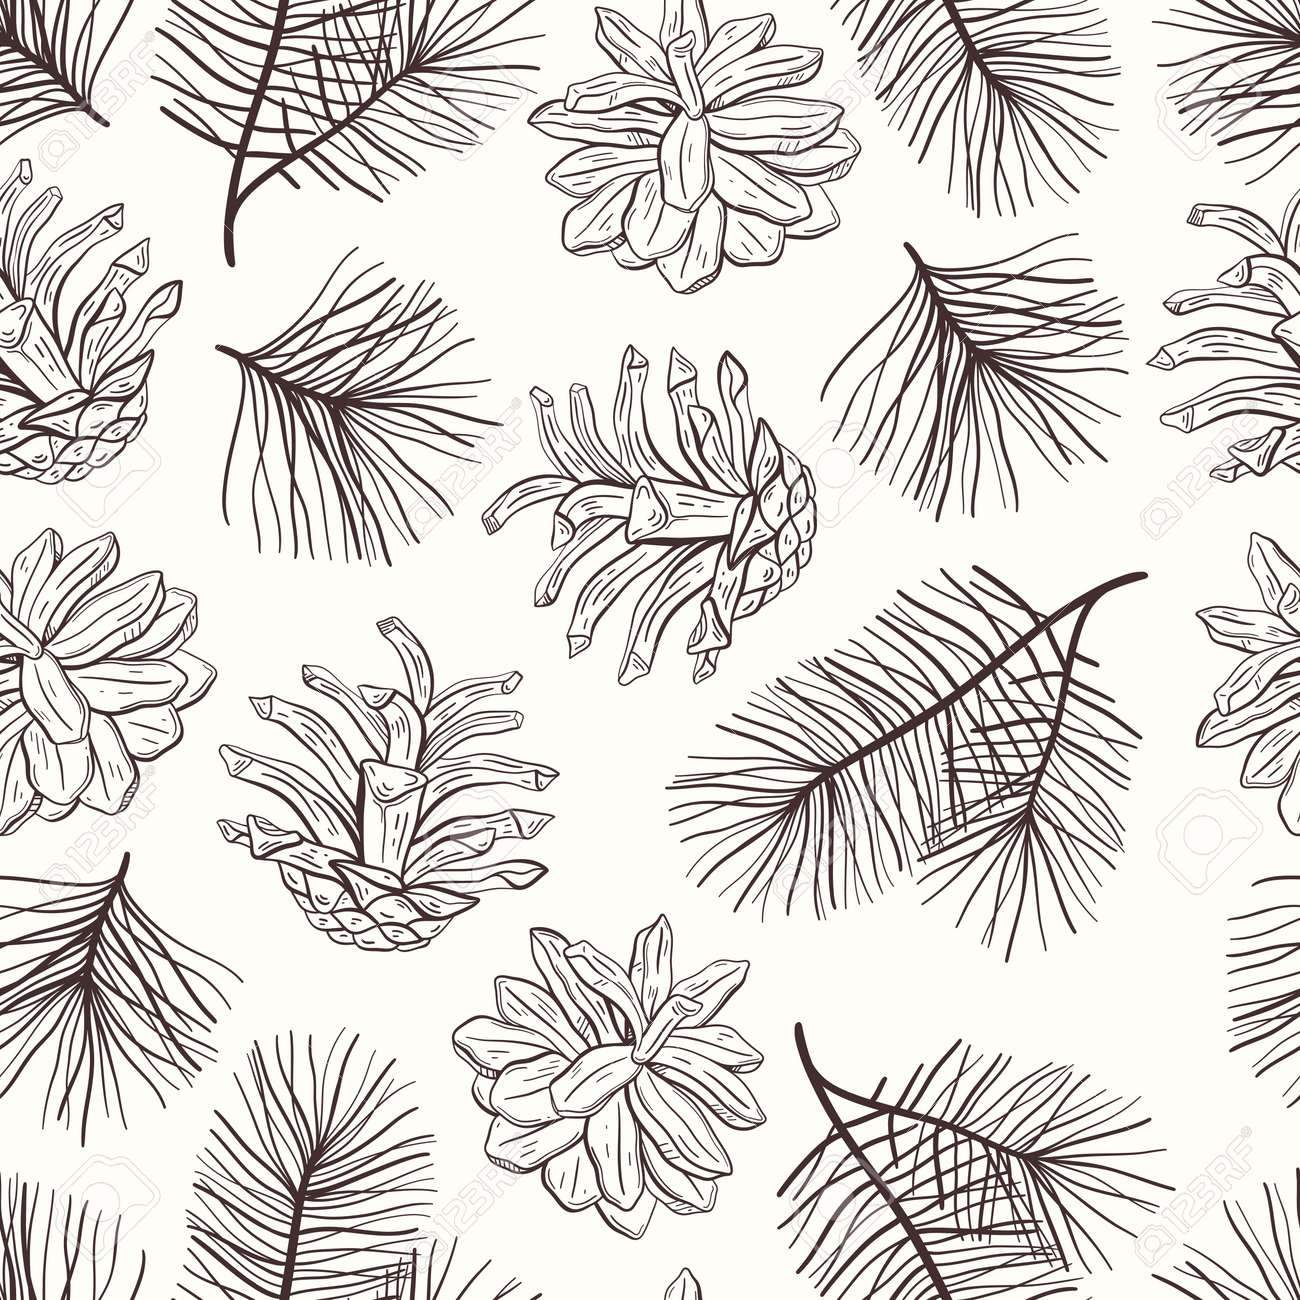 Elegant hand drawn Christmas seamless pattern with pine cones and branches. Winter botanical vintage background. Vector illustration - 159122699